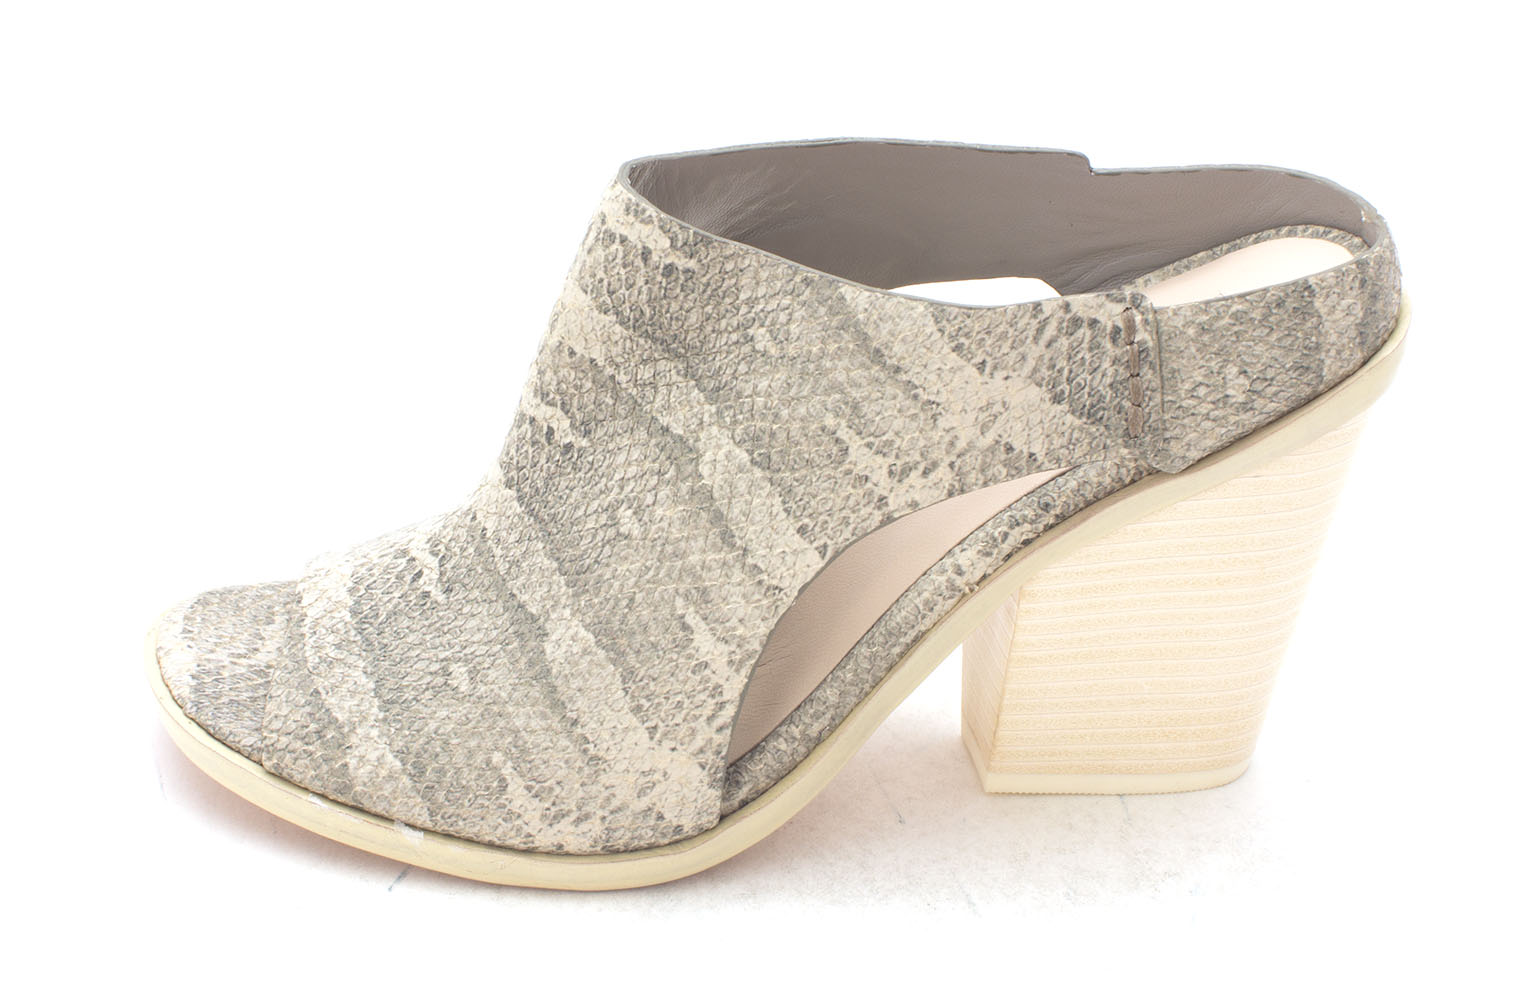 Cole Haan Womens 14A4158 Open Toe Mules Paloma Size 6.0